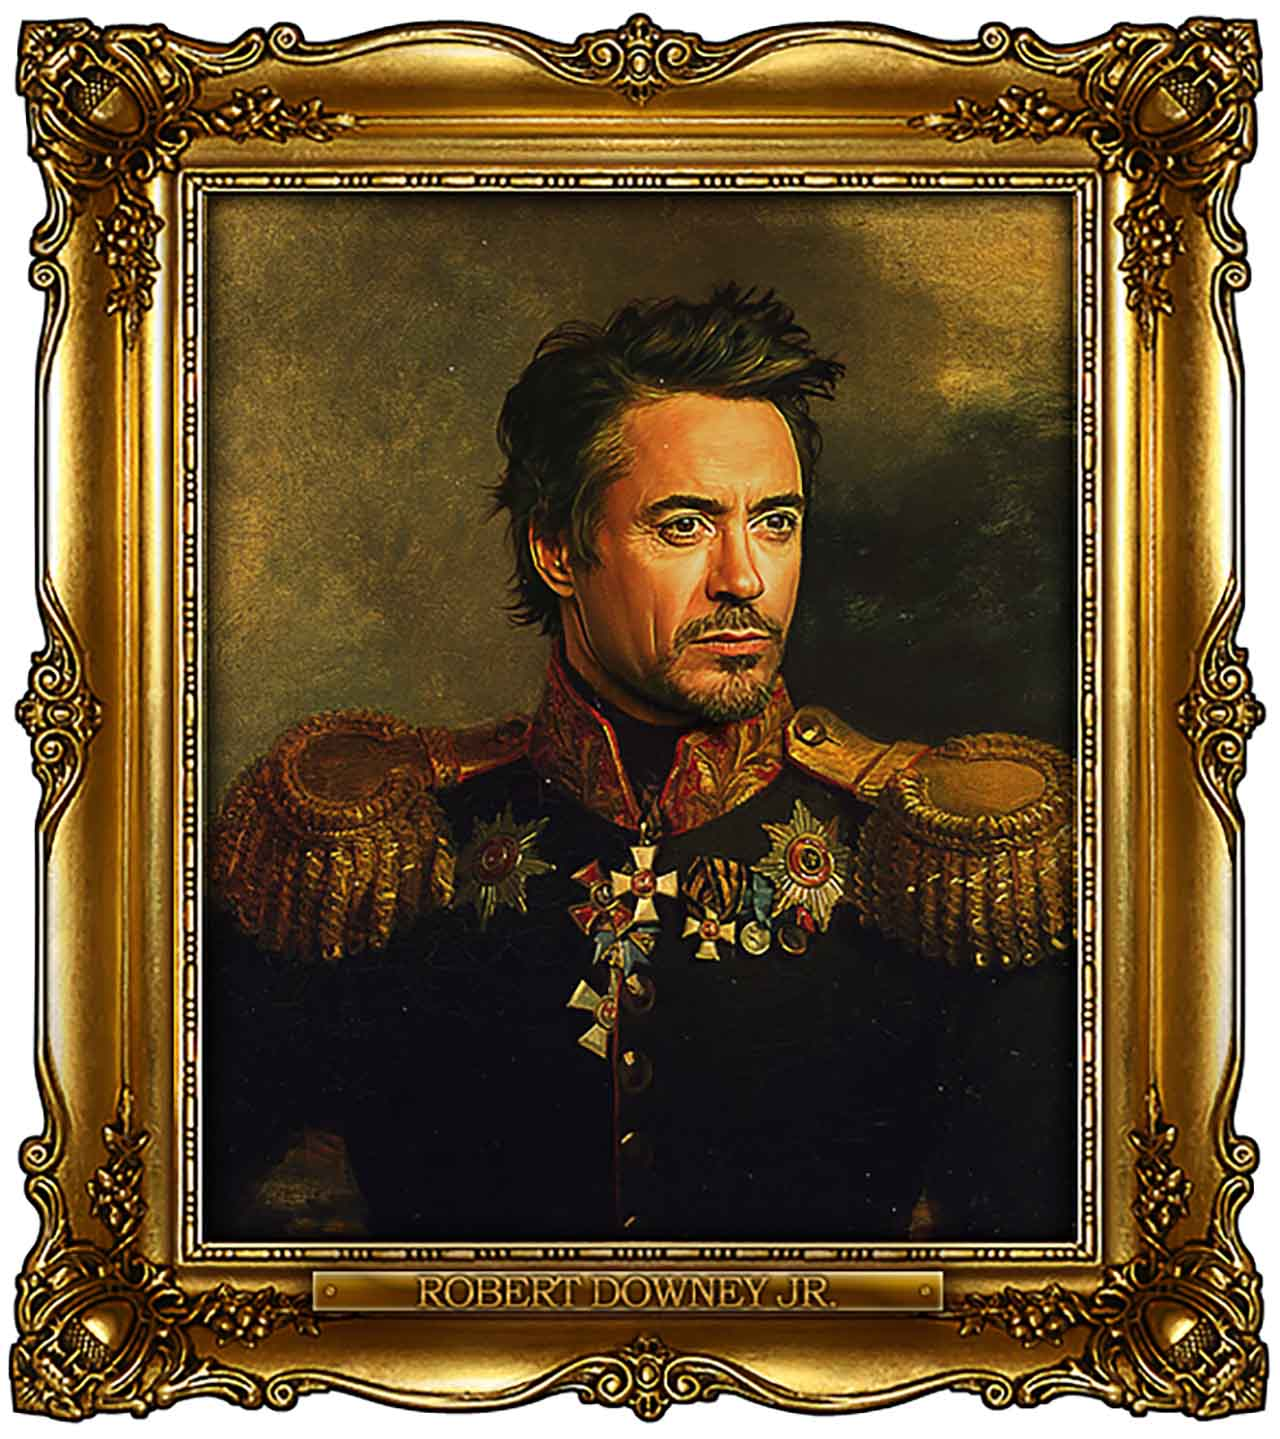 Artist Turns Famous Actors Into Russian Generals - Robert Downey Jr.